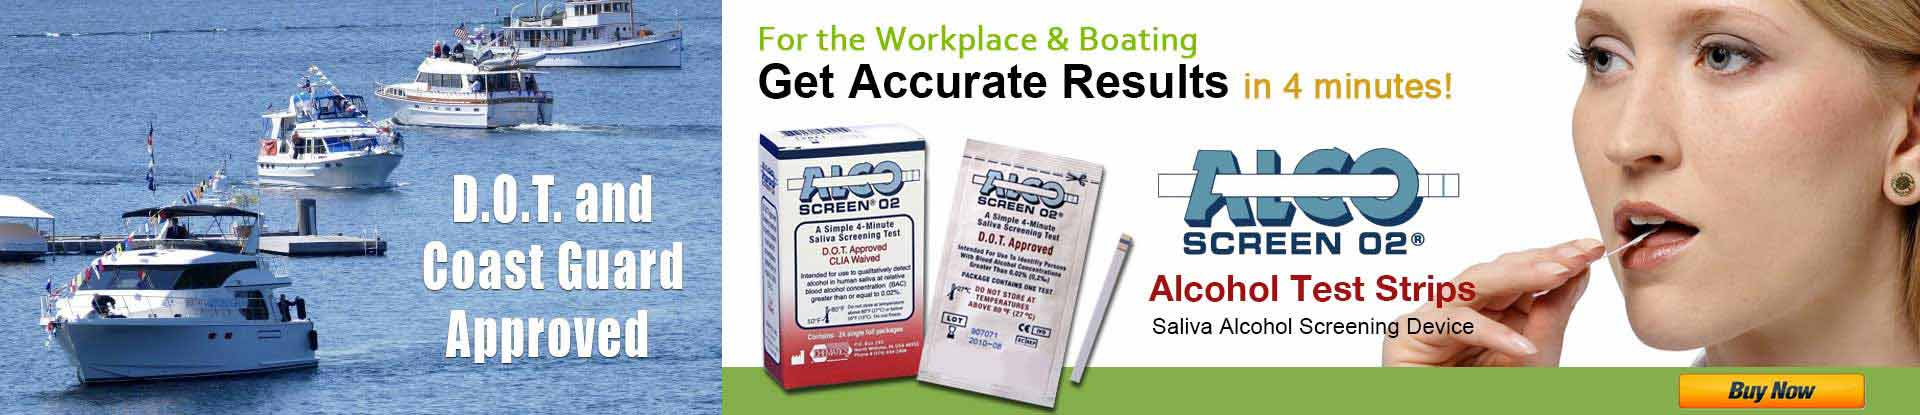 Alco-Screen Alcohol Test Strips